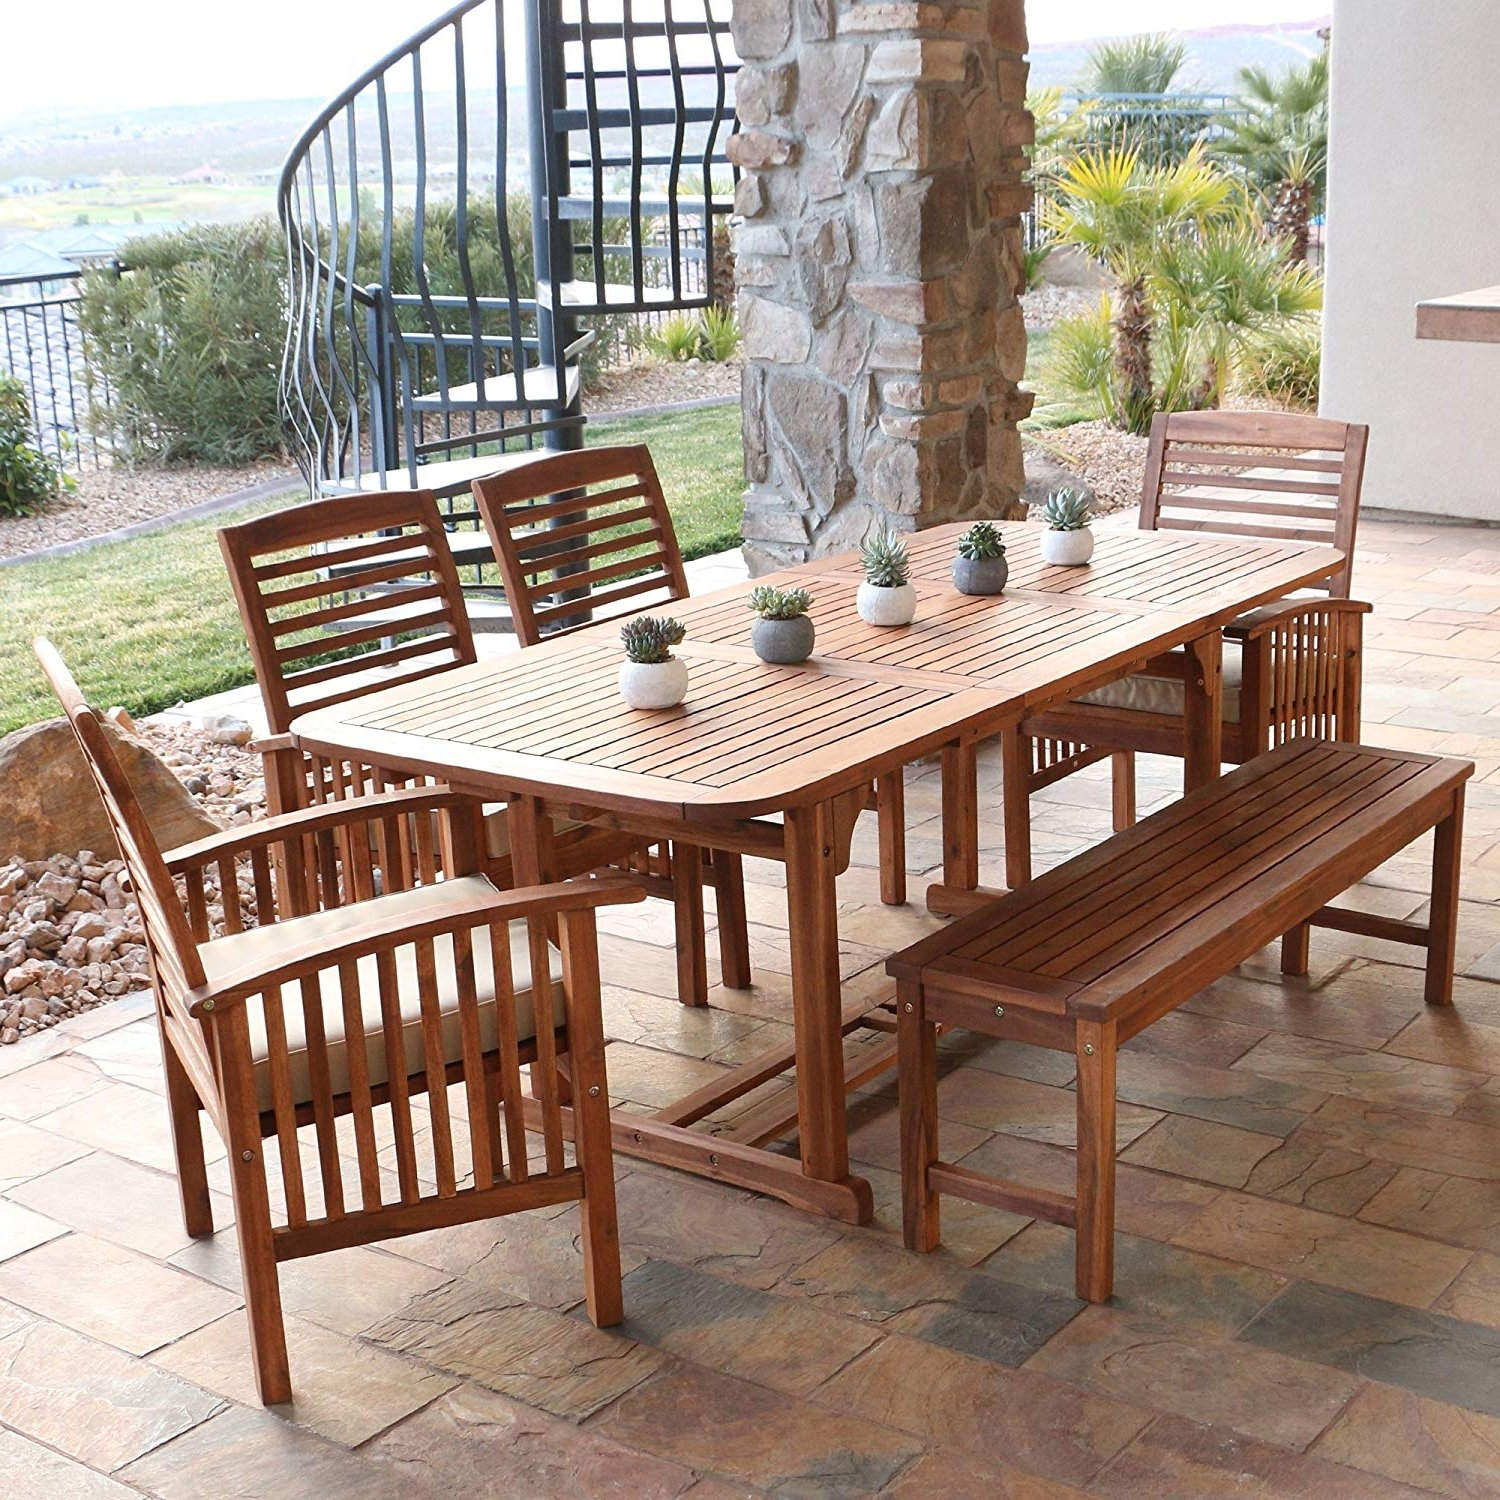 Famous Amazon: We Furniture Solid Acacia Wood 6 Piece Patio Dining Set In Outdoor Dining Table And Chairs Sets (View 3 of 25)